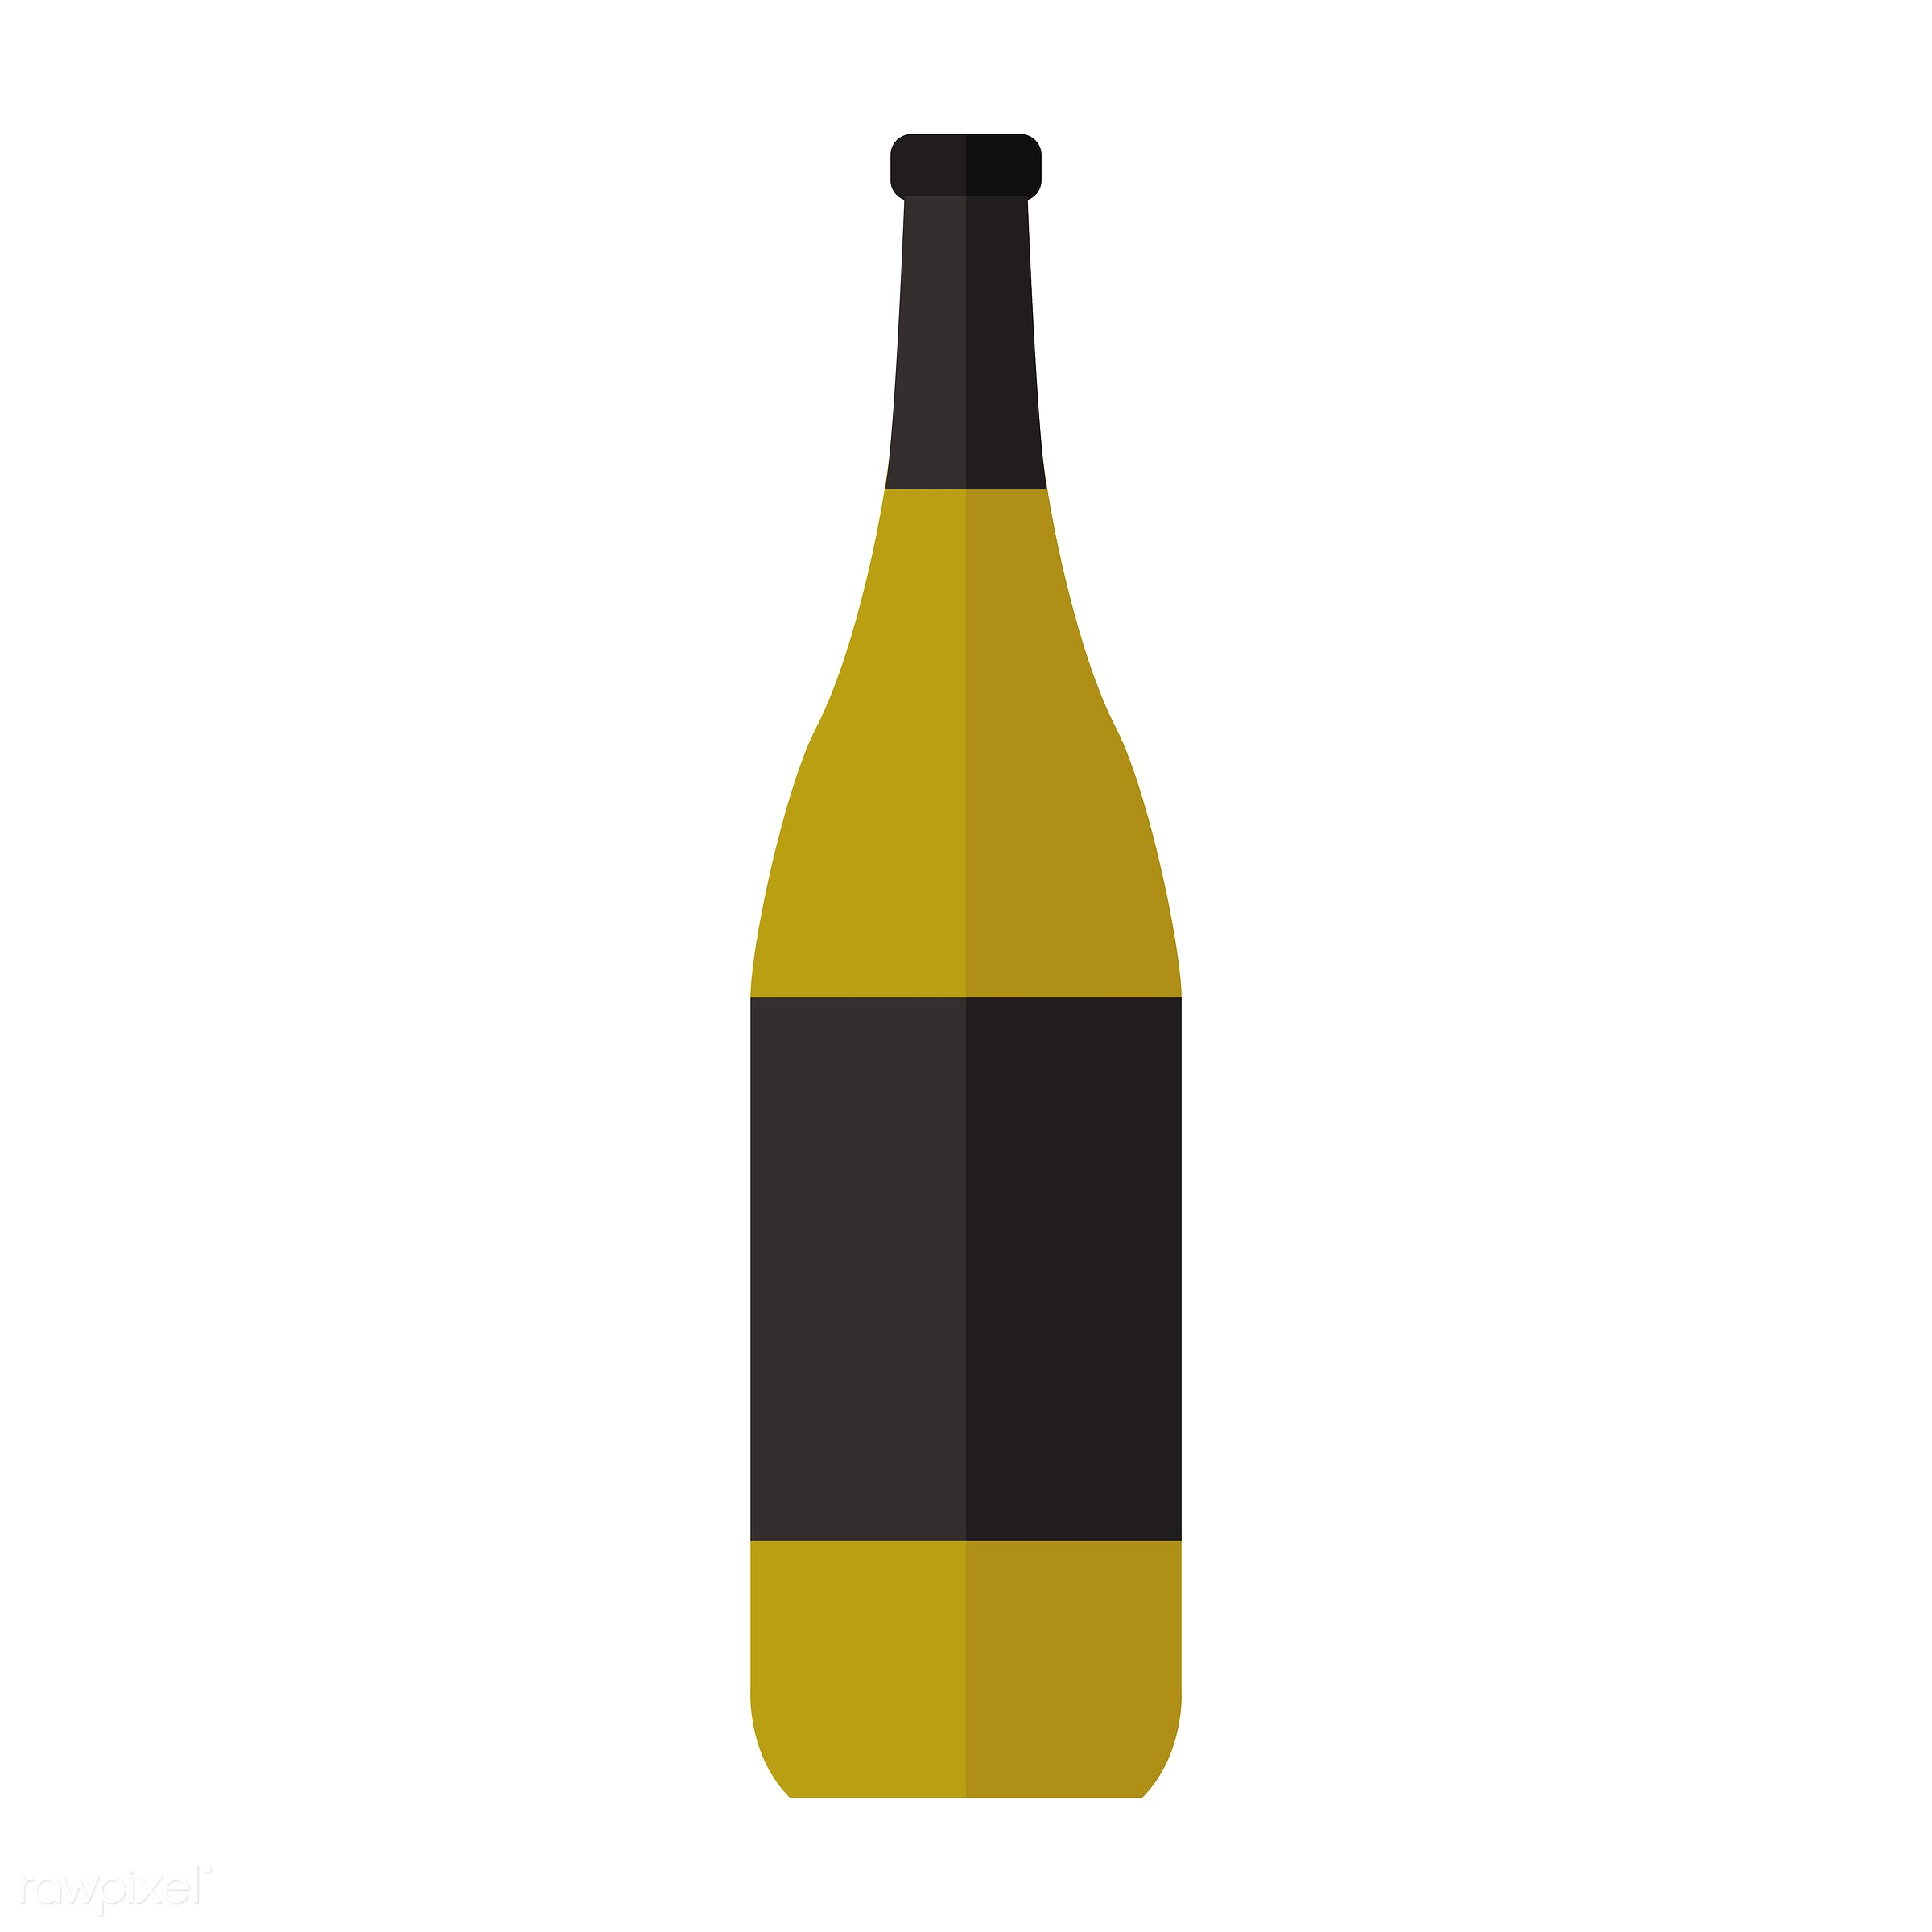 vector, graphic, illustration, icon, symbol, colorful, cute, drink, beverage, water, wine, white wine, wine bottle